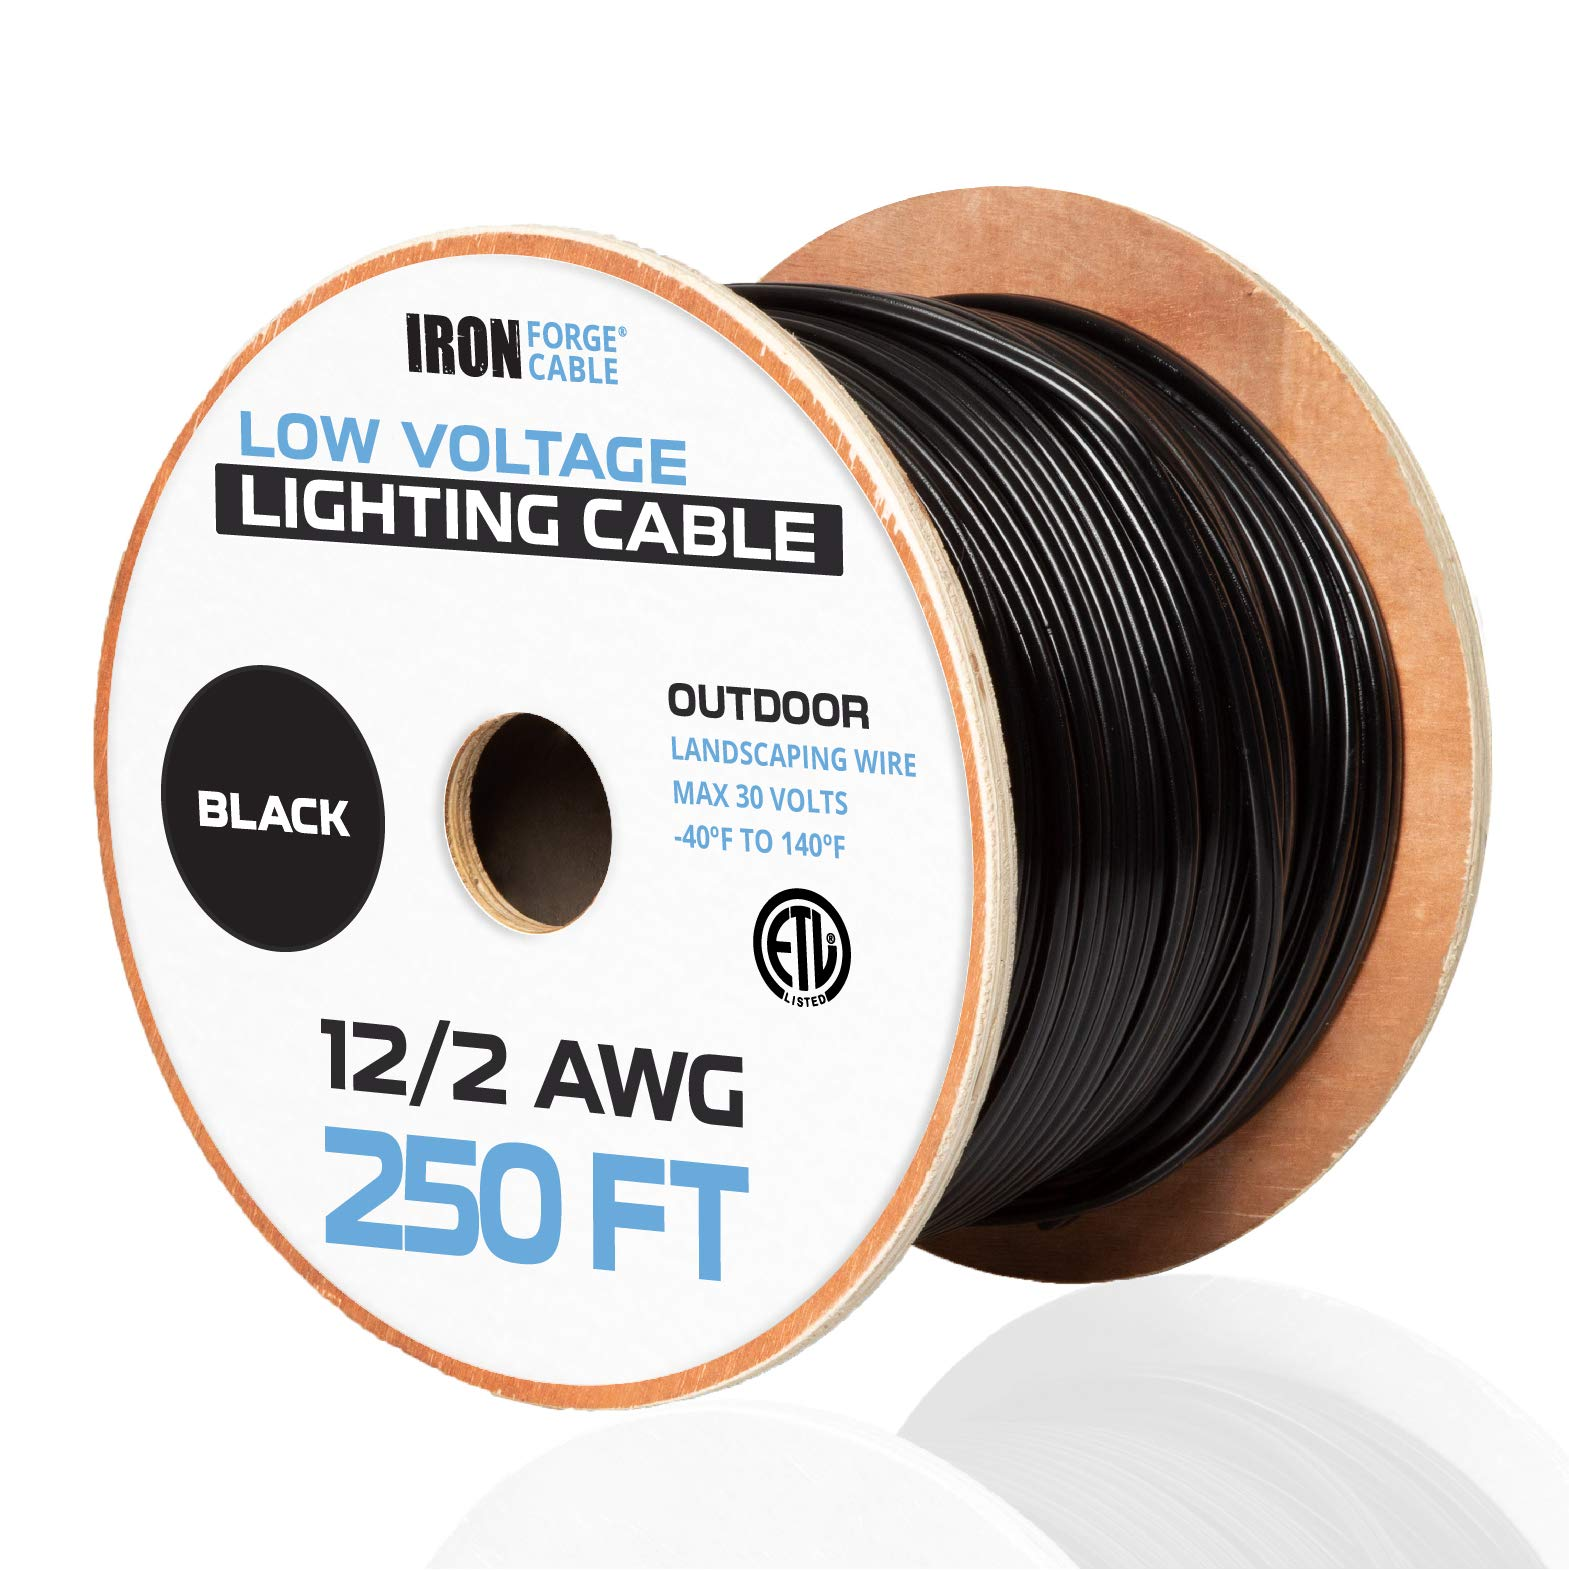 12/2 Low Voltage Landscape Wire - 250ft Outdoor Low-Voltage Cable for Landscape Lighting, Black by Iron Forge Cable